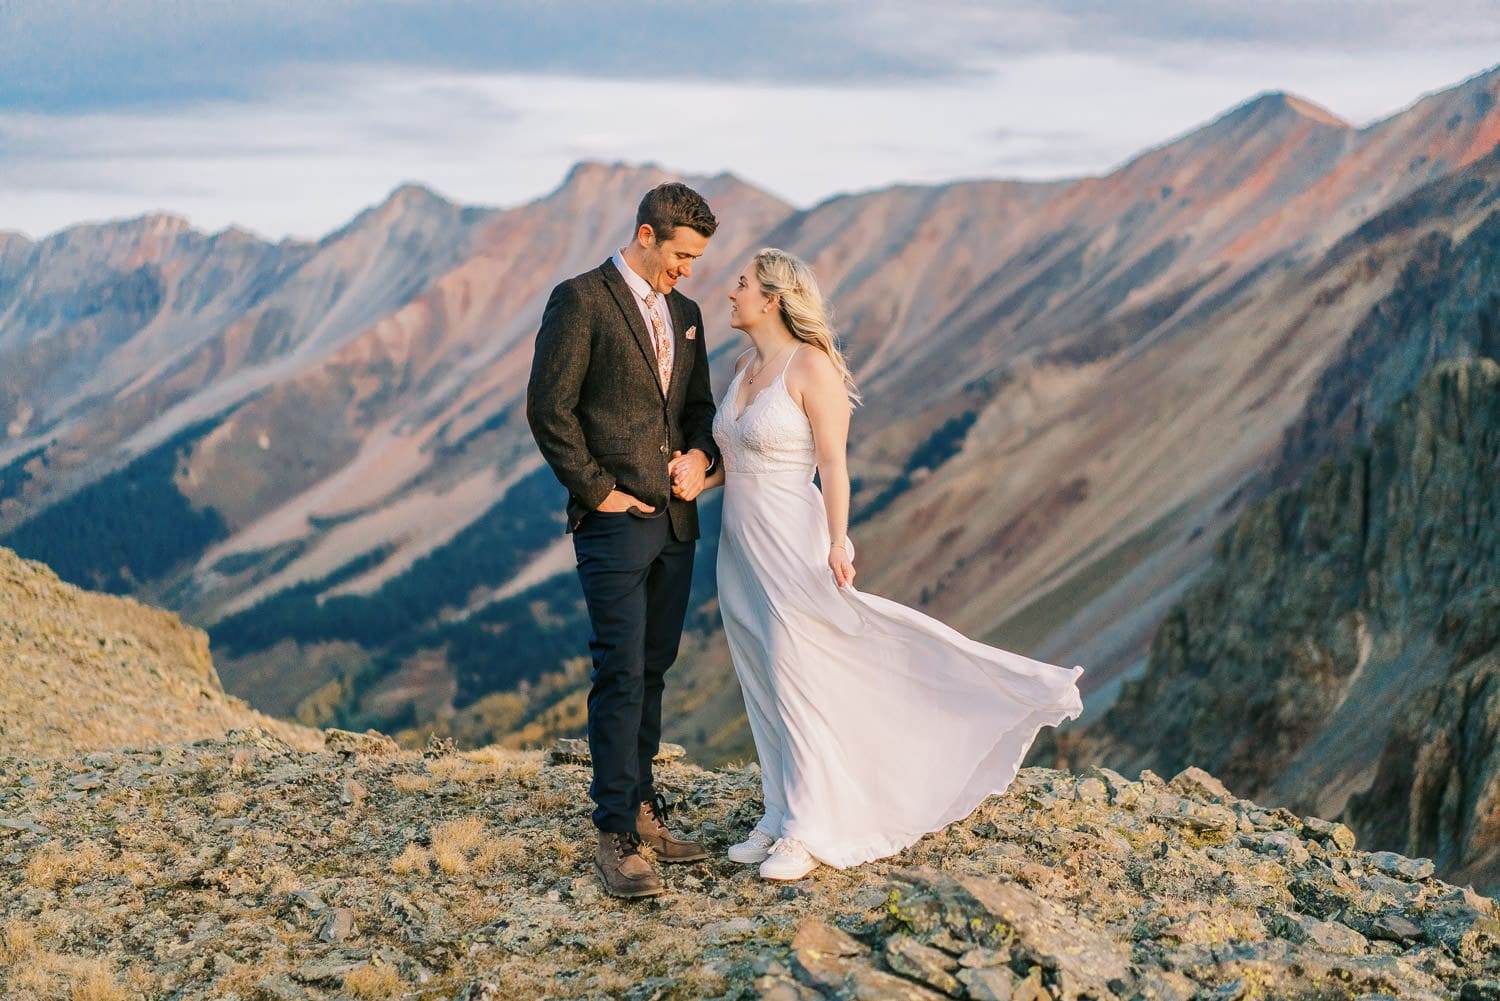 How to Make Your Elopement Day Special by Choosing an Epic Location.